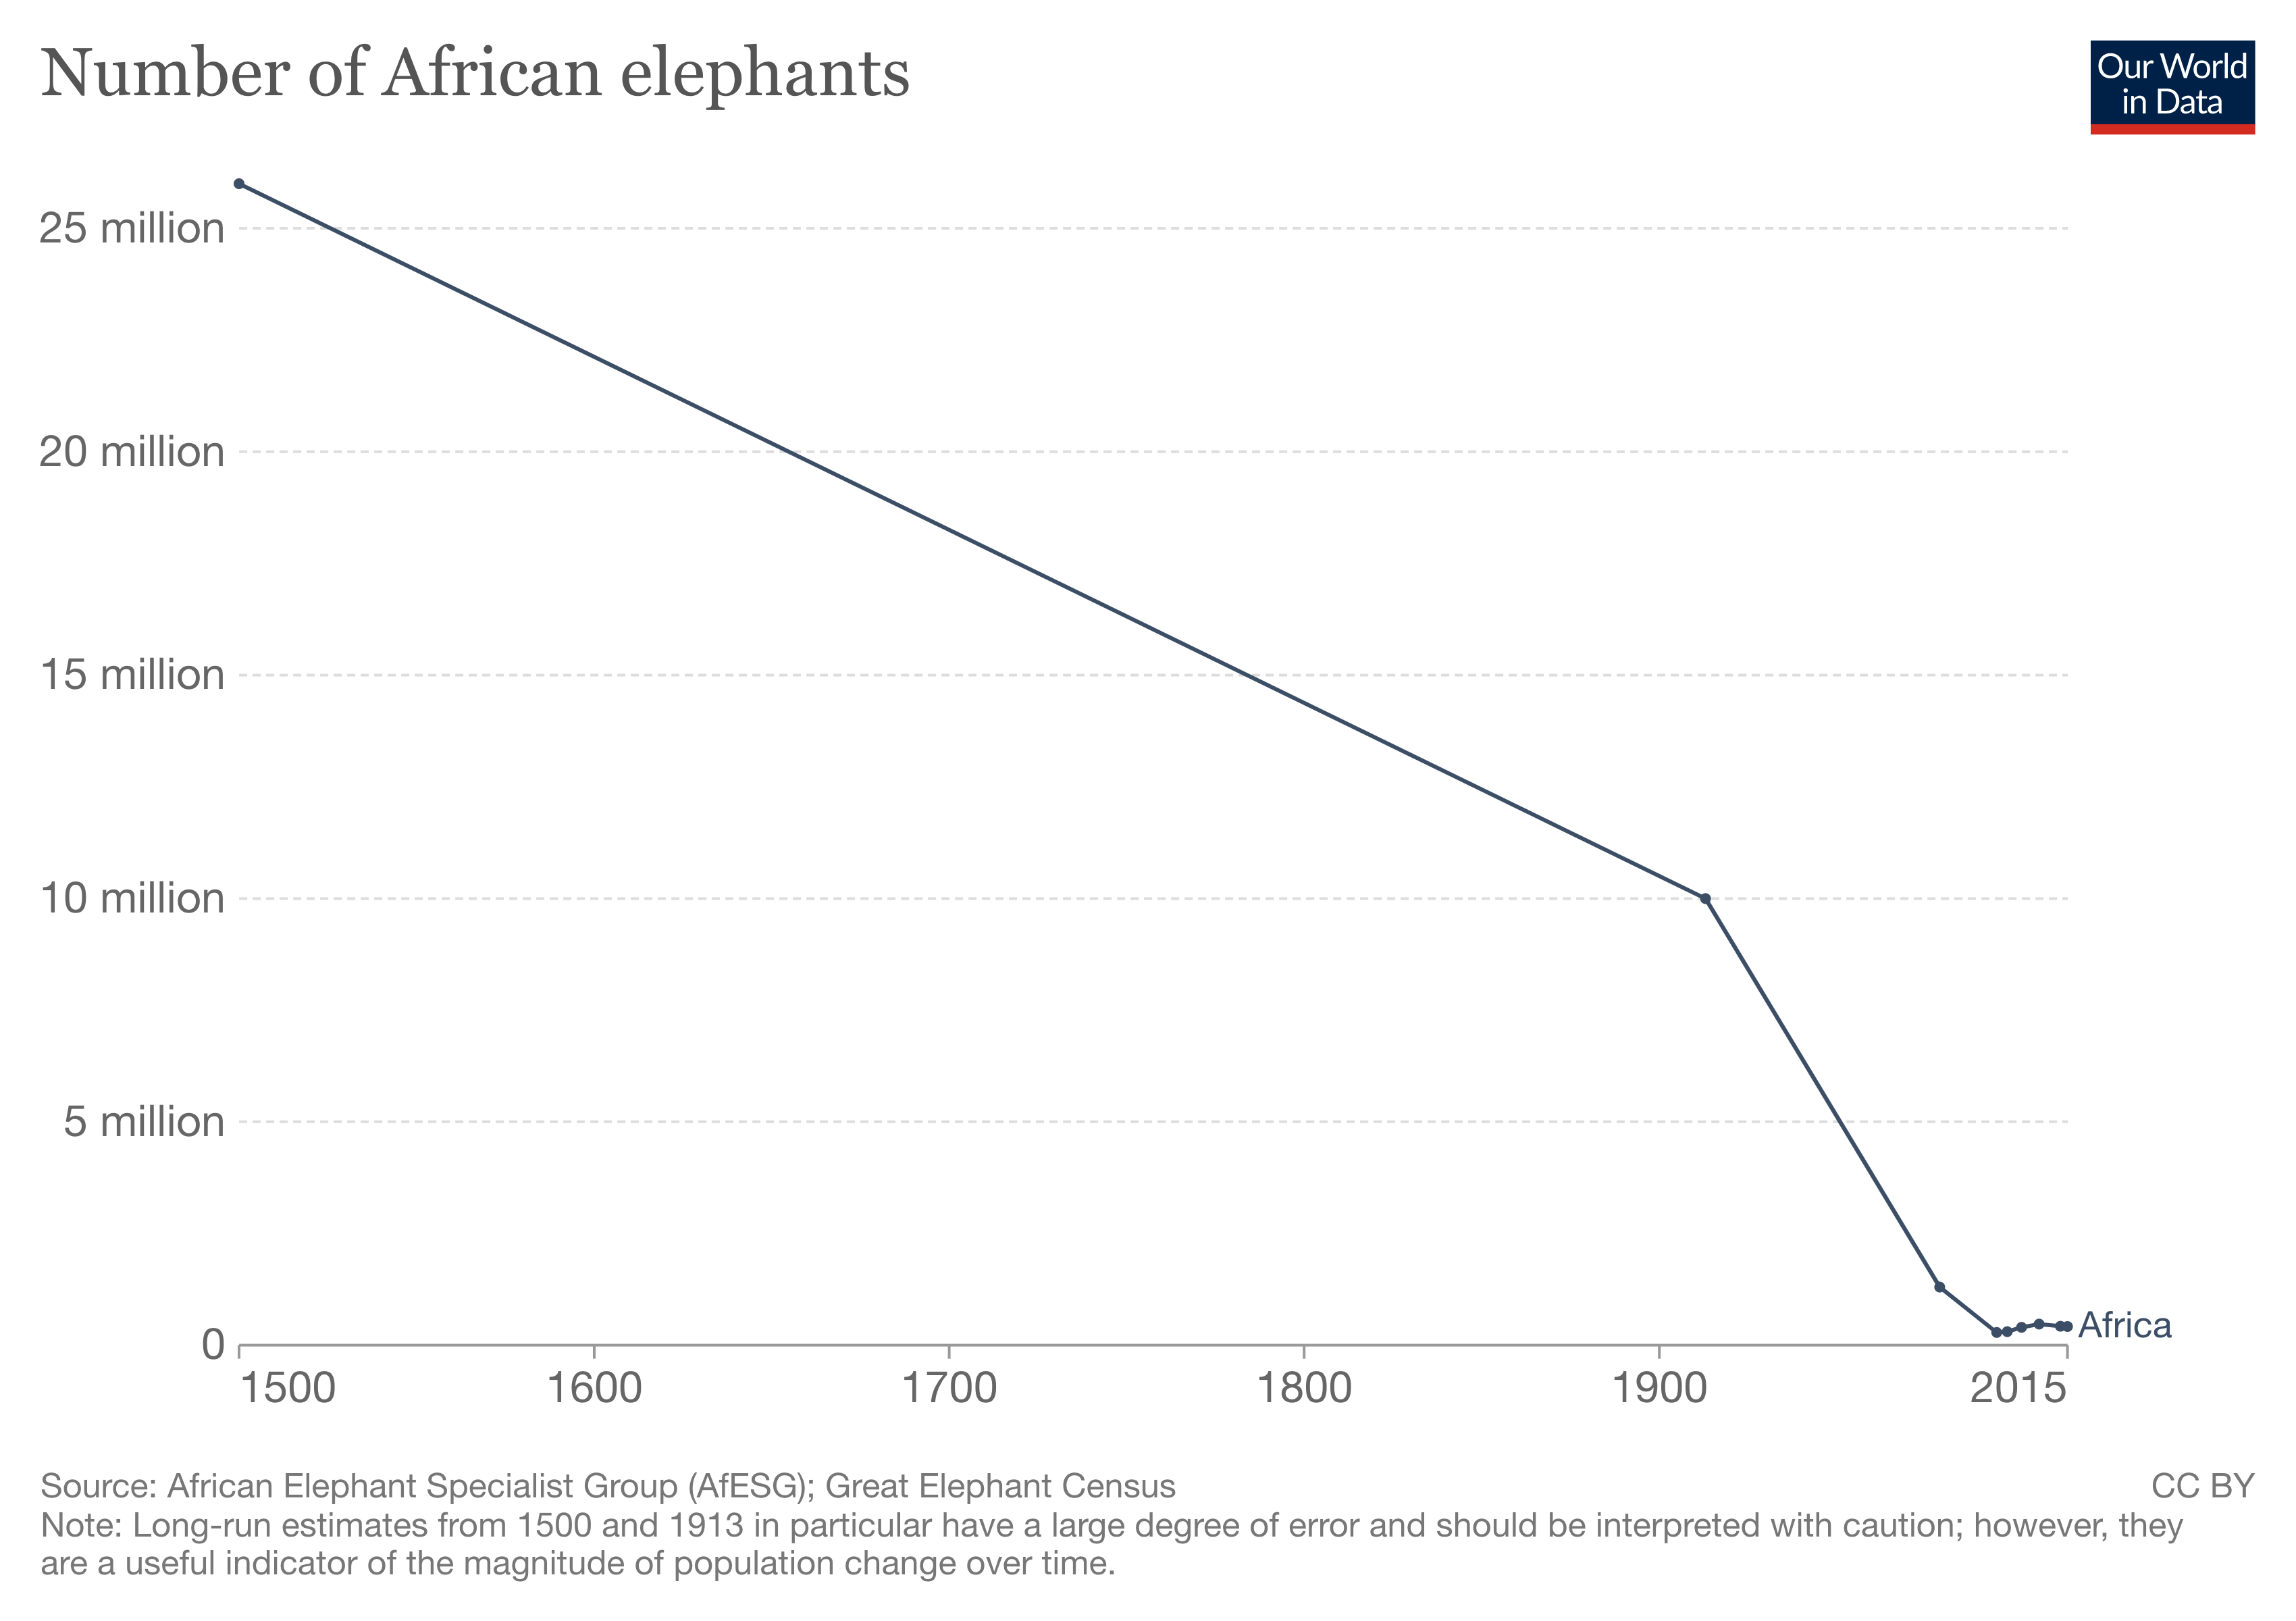 Number of African elephants